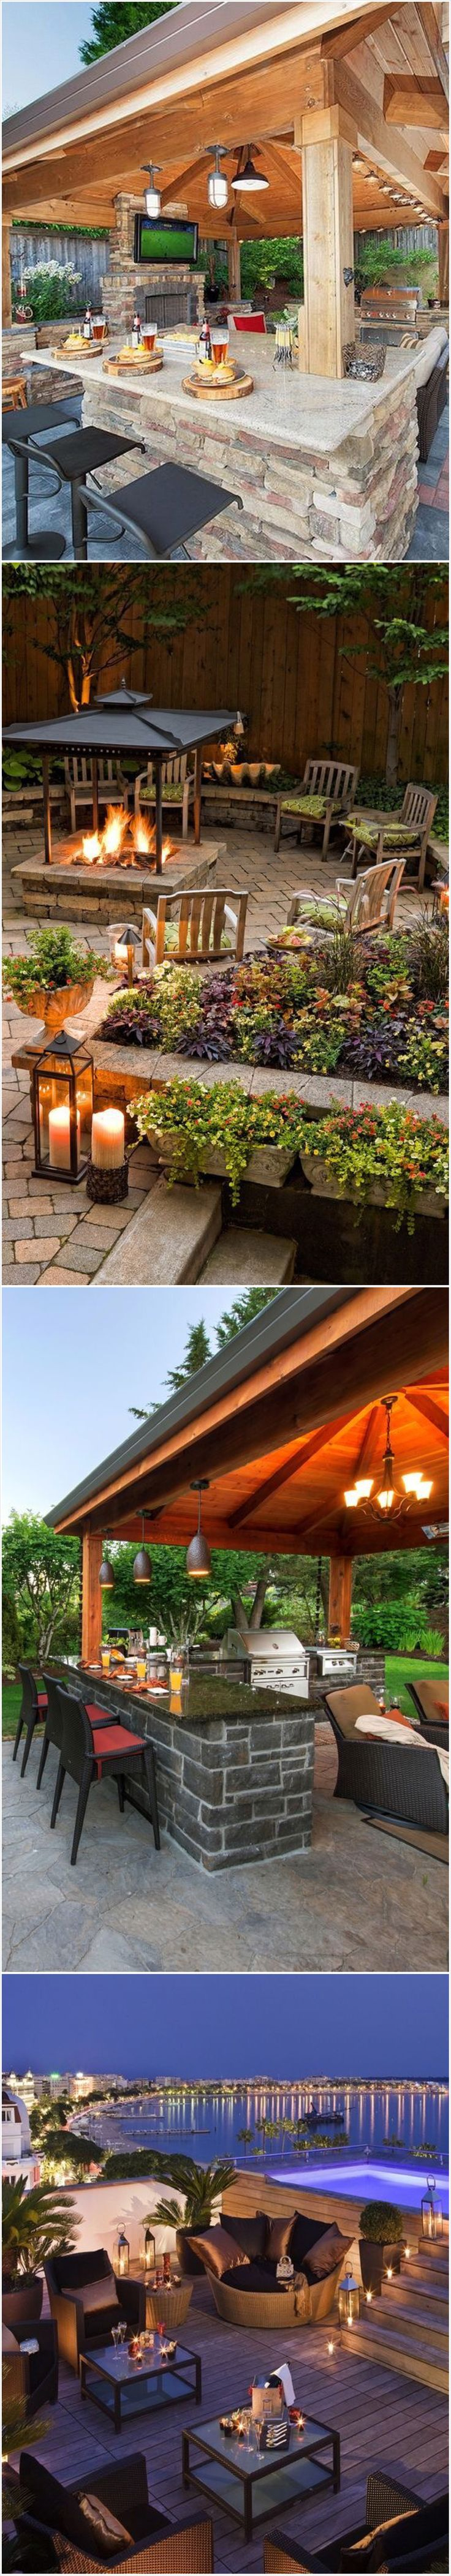 Amazing Outdoor Living Spaces #outdoorliving ✨